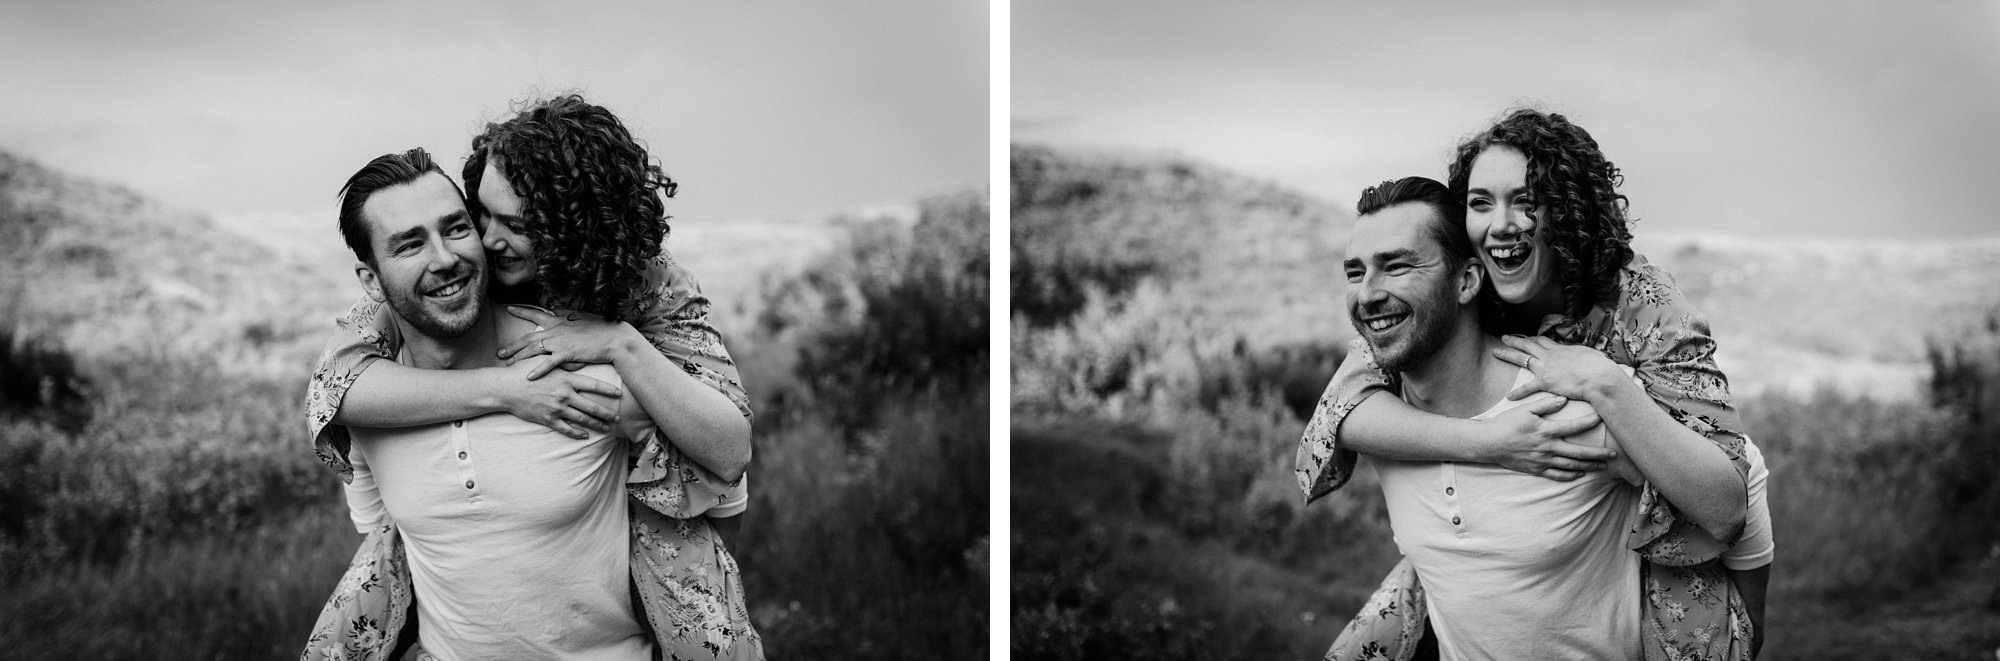 engagement session photos of boho stylish couple in a field at big hill springs provincial park in Calgary